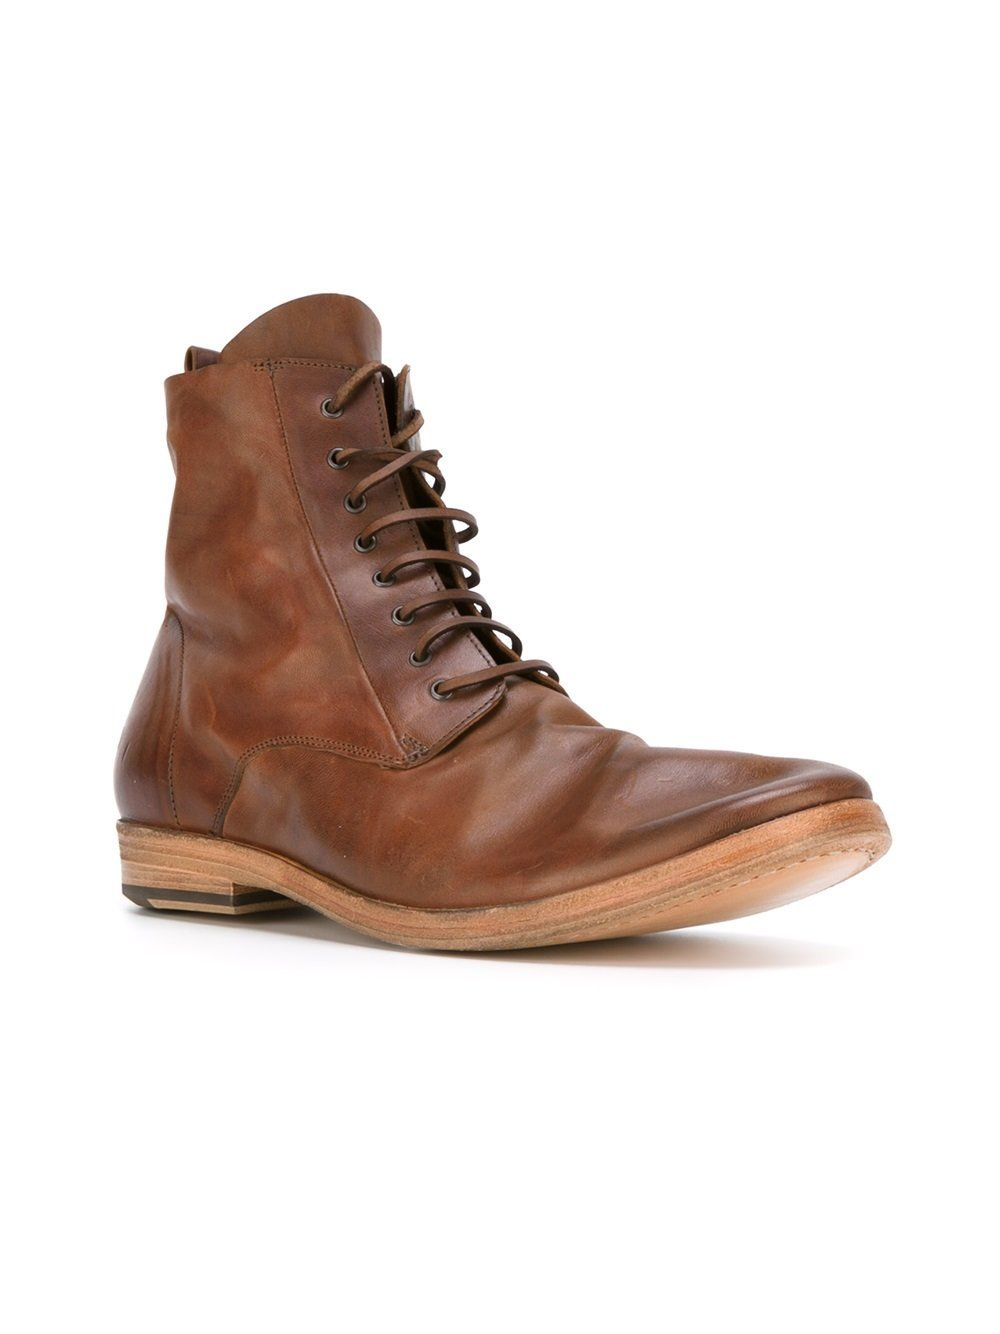 In Shoes Ankle Lace Up Try Walking My Boots Marsèll 2018 gqR7vwOv